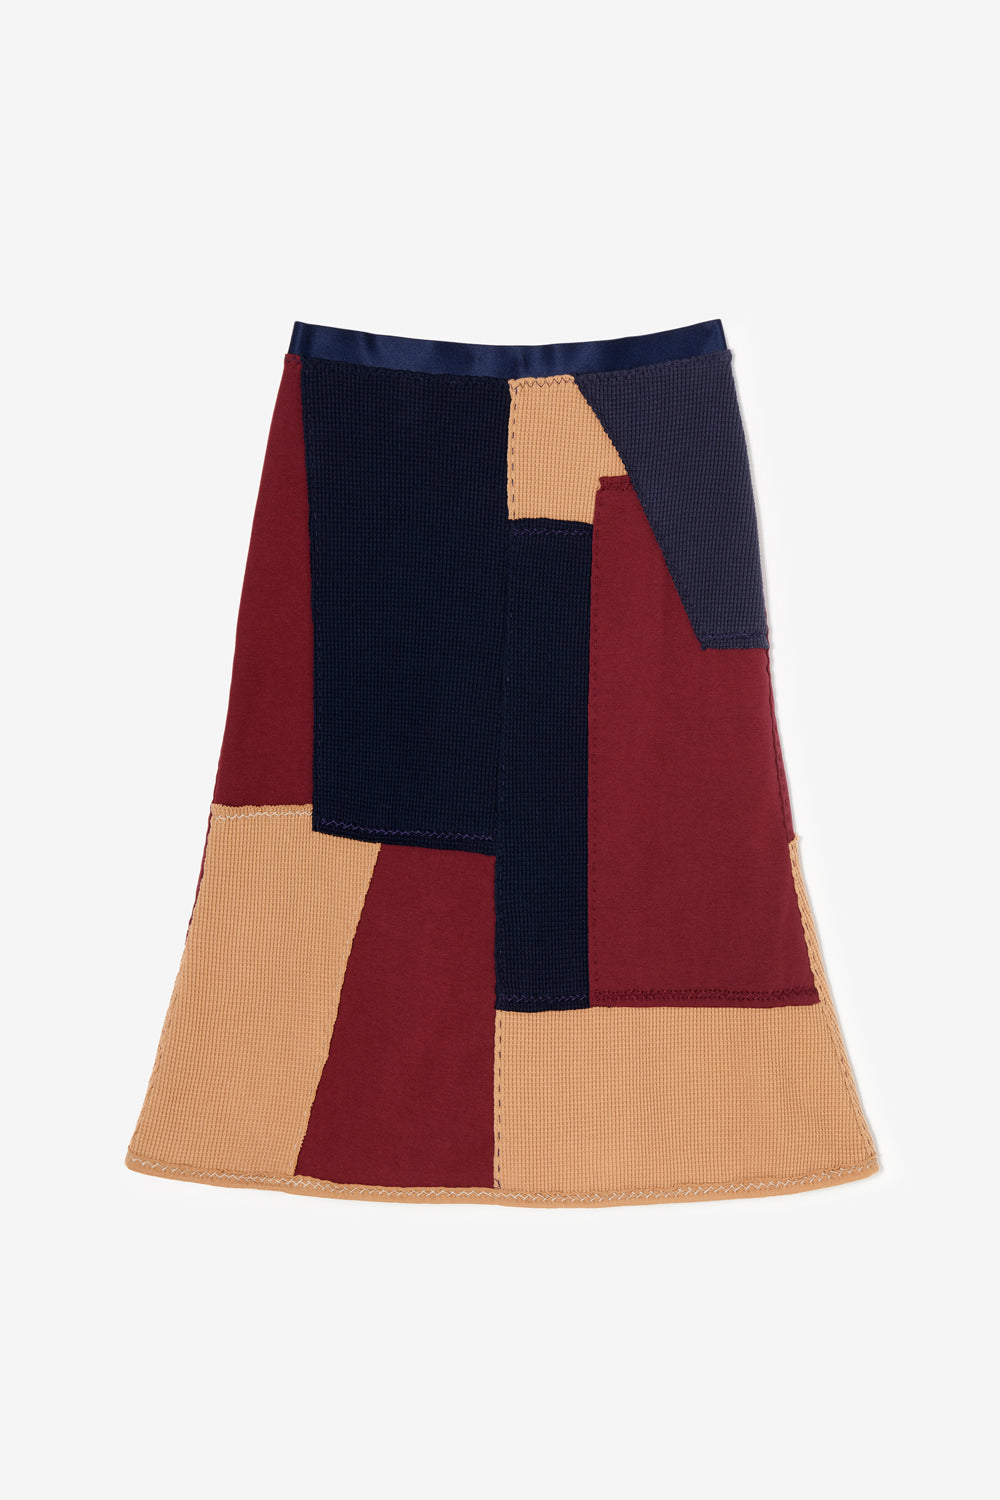 Alabama Chanin Artisan Designed  Zero Waste Waffle Skirt in Camel and Navy with Heavy-weight Plum